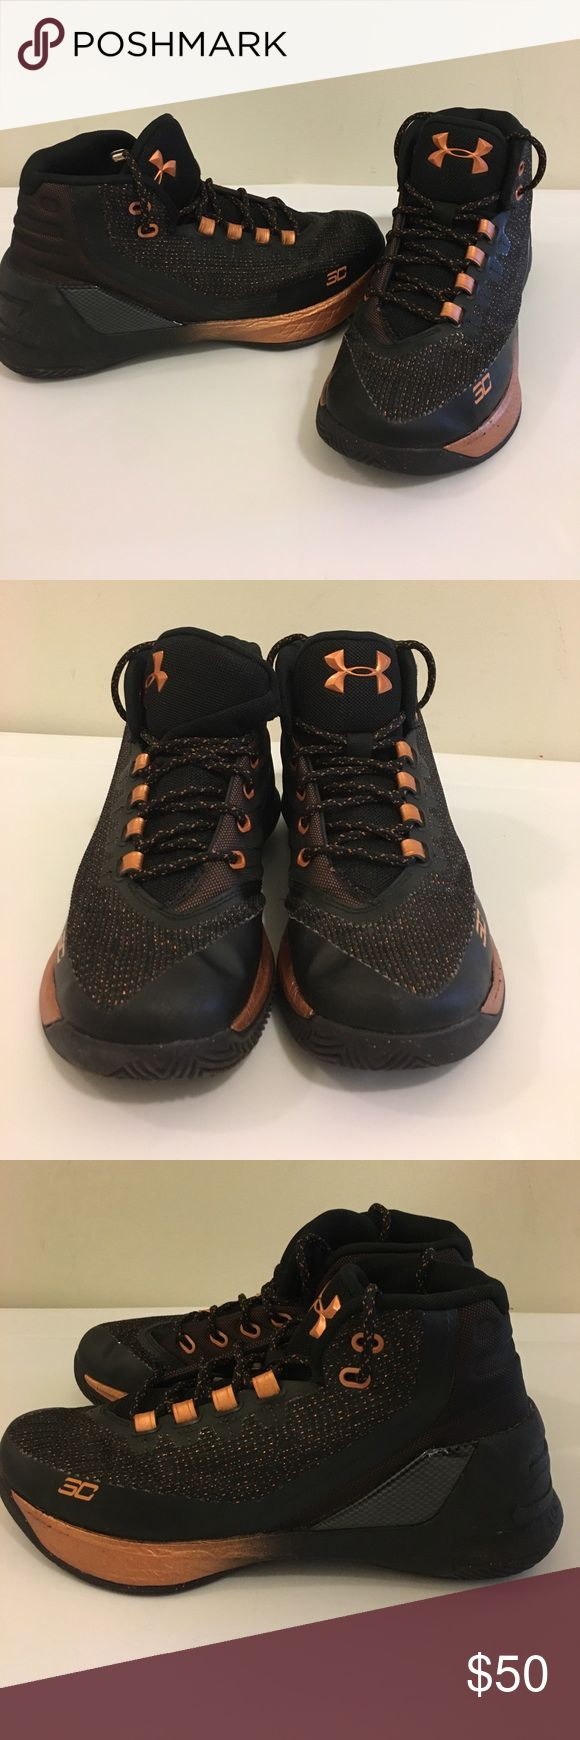 Steph Curry size 6-1/2 under armour Worn couple times in like new condition big boys size 6-1/2 black and rose gold steph curry edition under armor basketball shoes. Come from pet and smoke free home Under Armour Shoes Sneakers